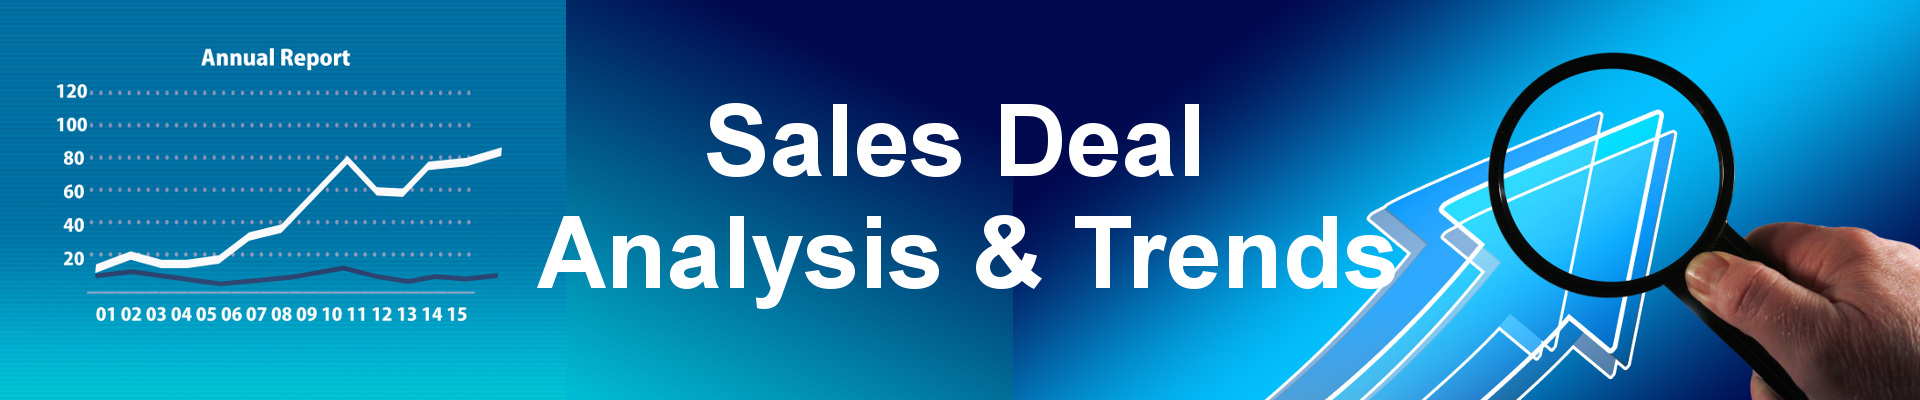 Sales Deal Analysis & Trends